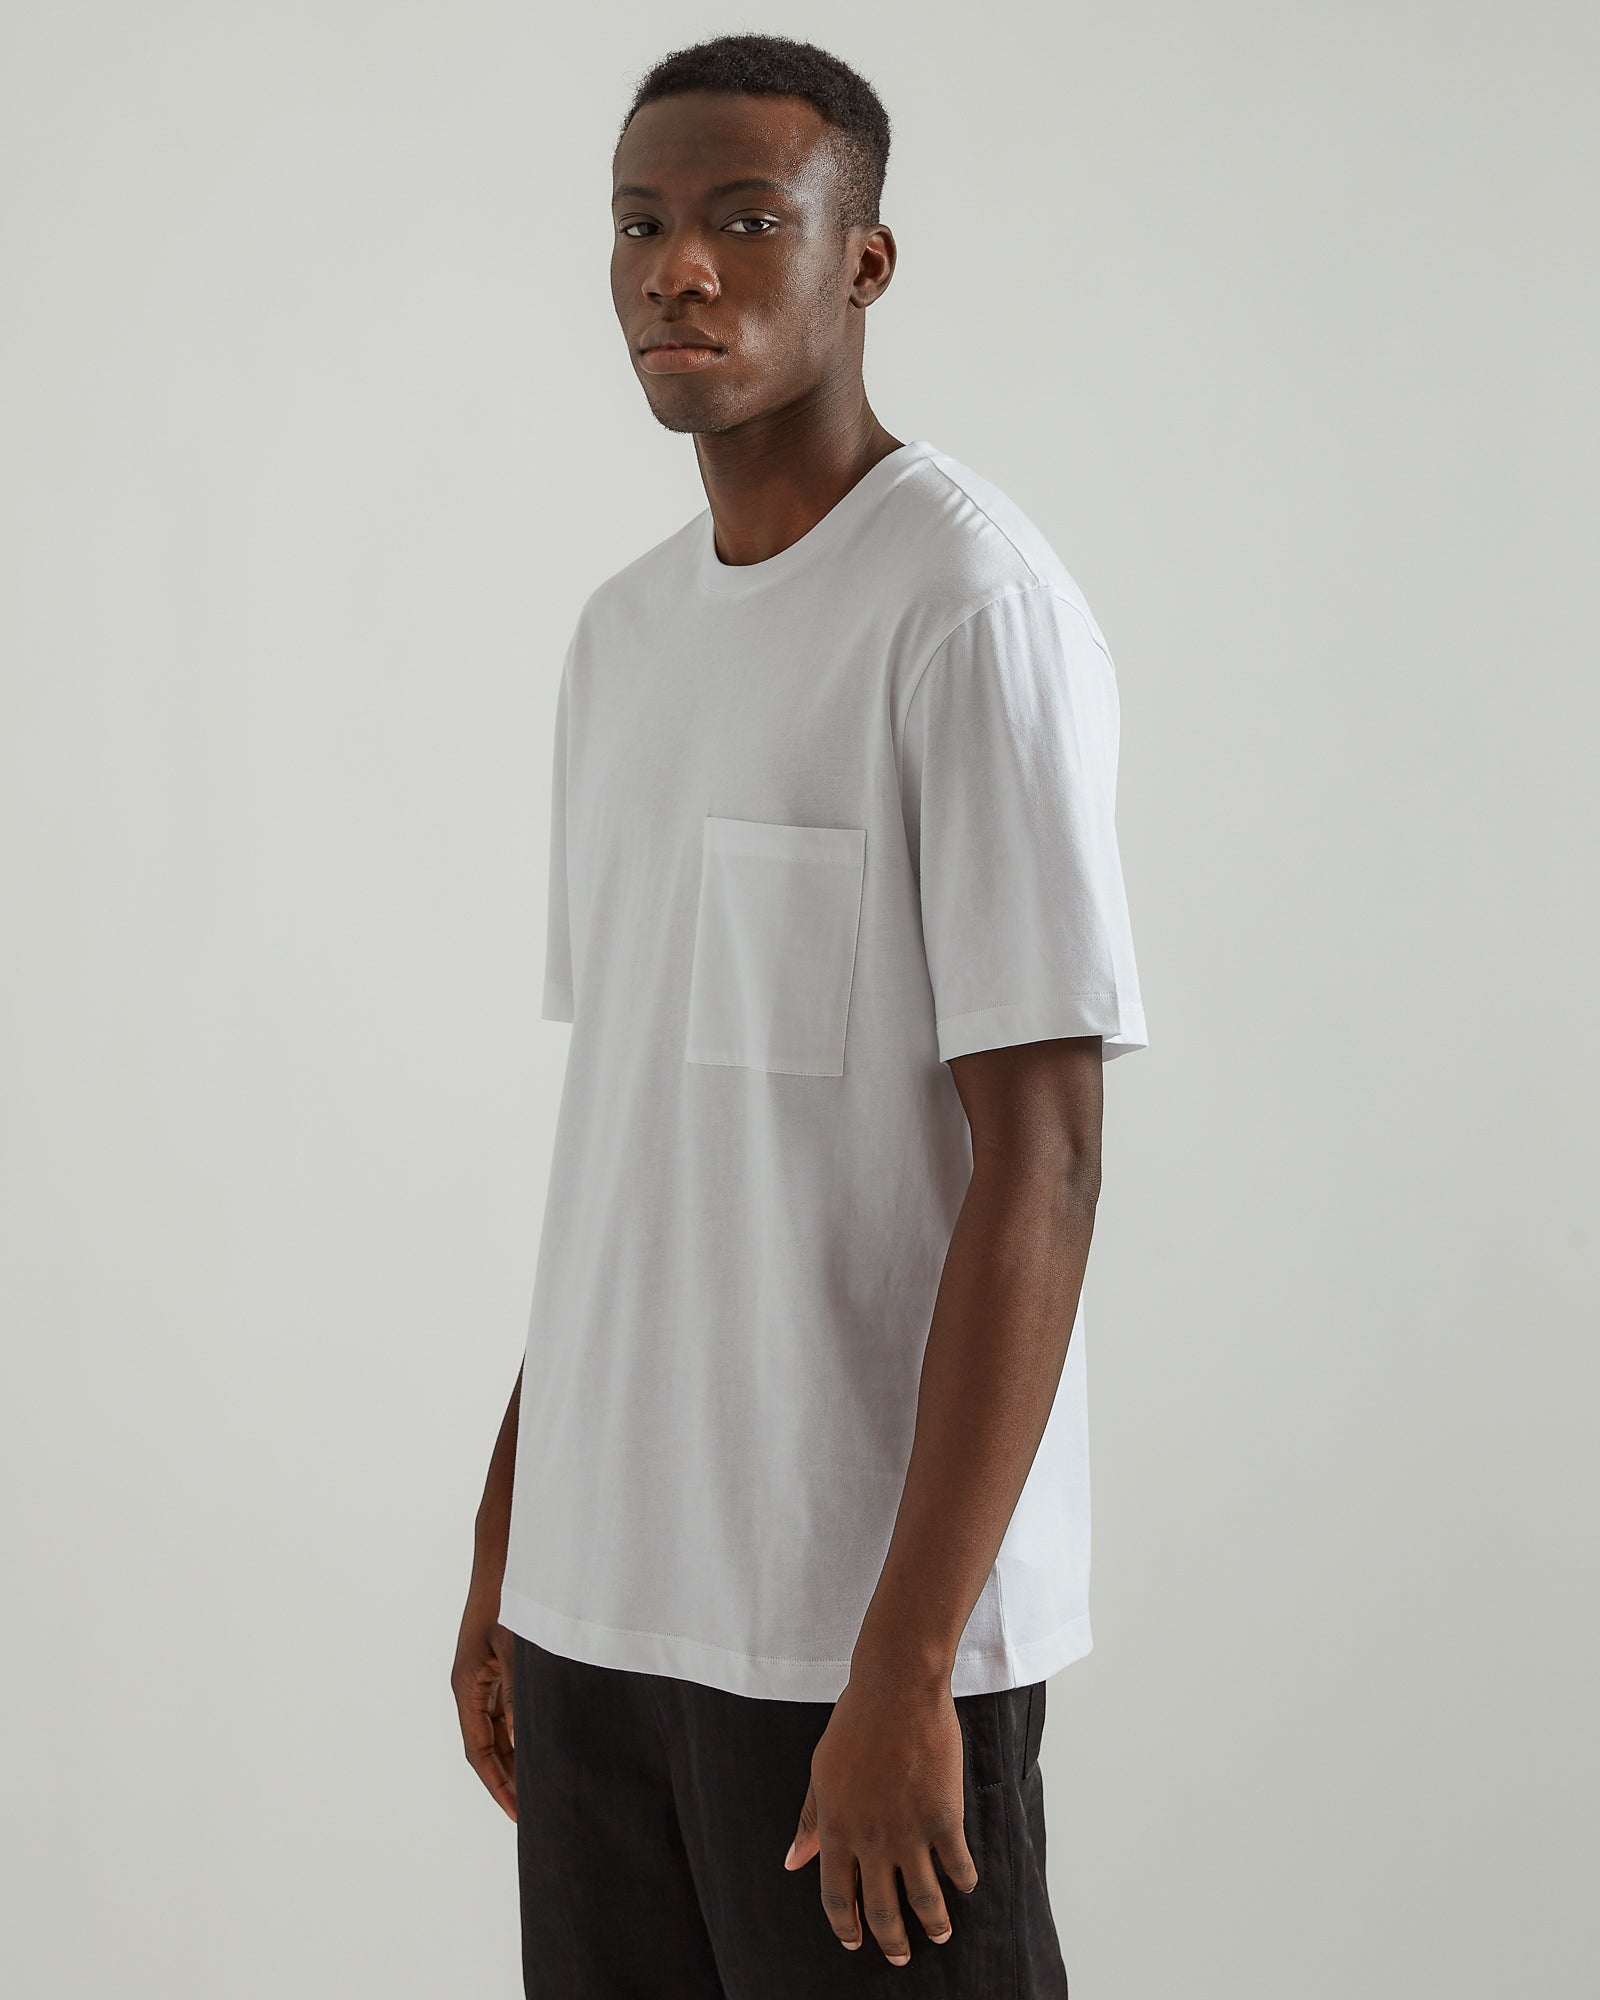 Rosedale T-Shirt in White